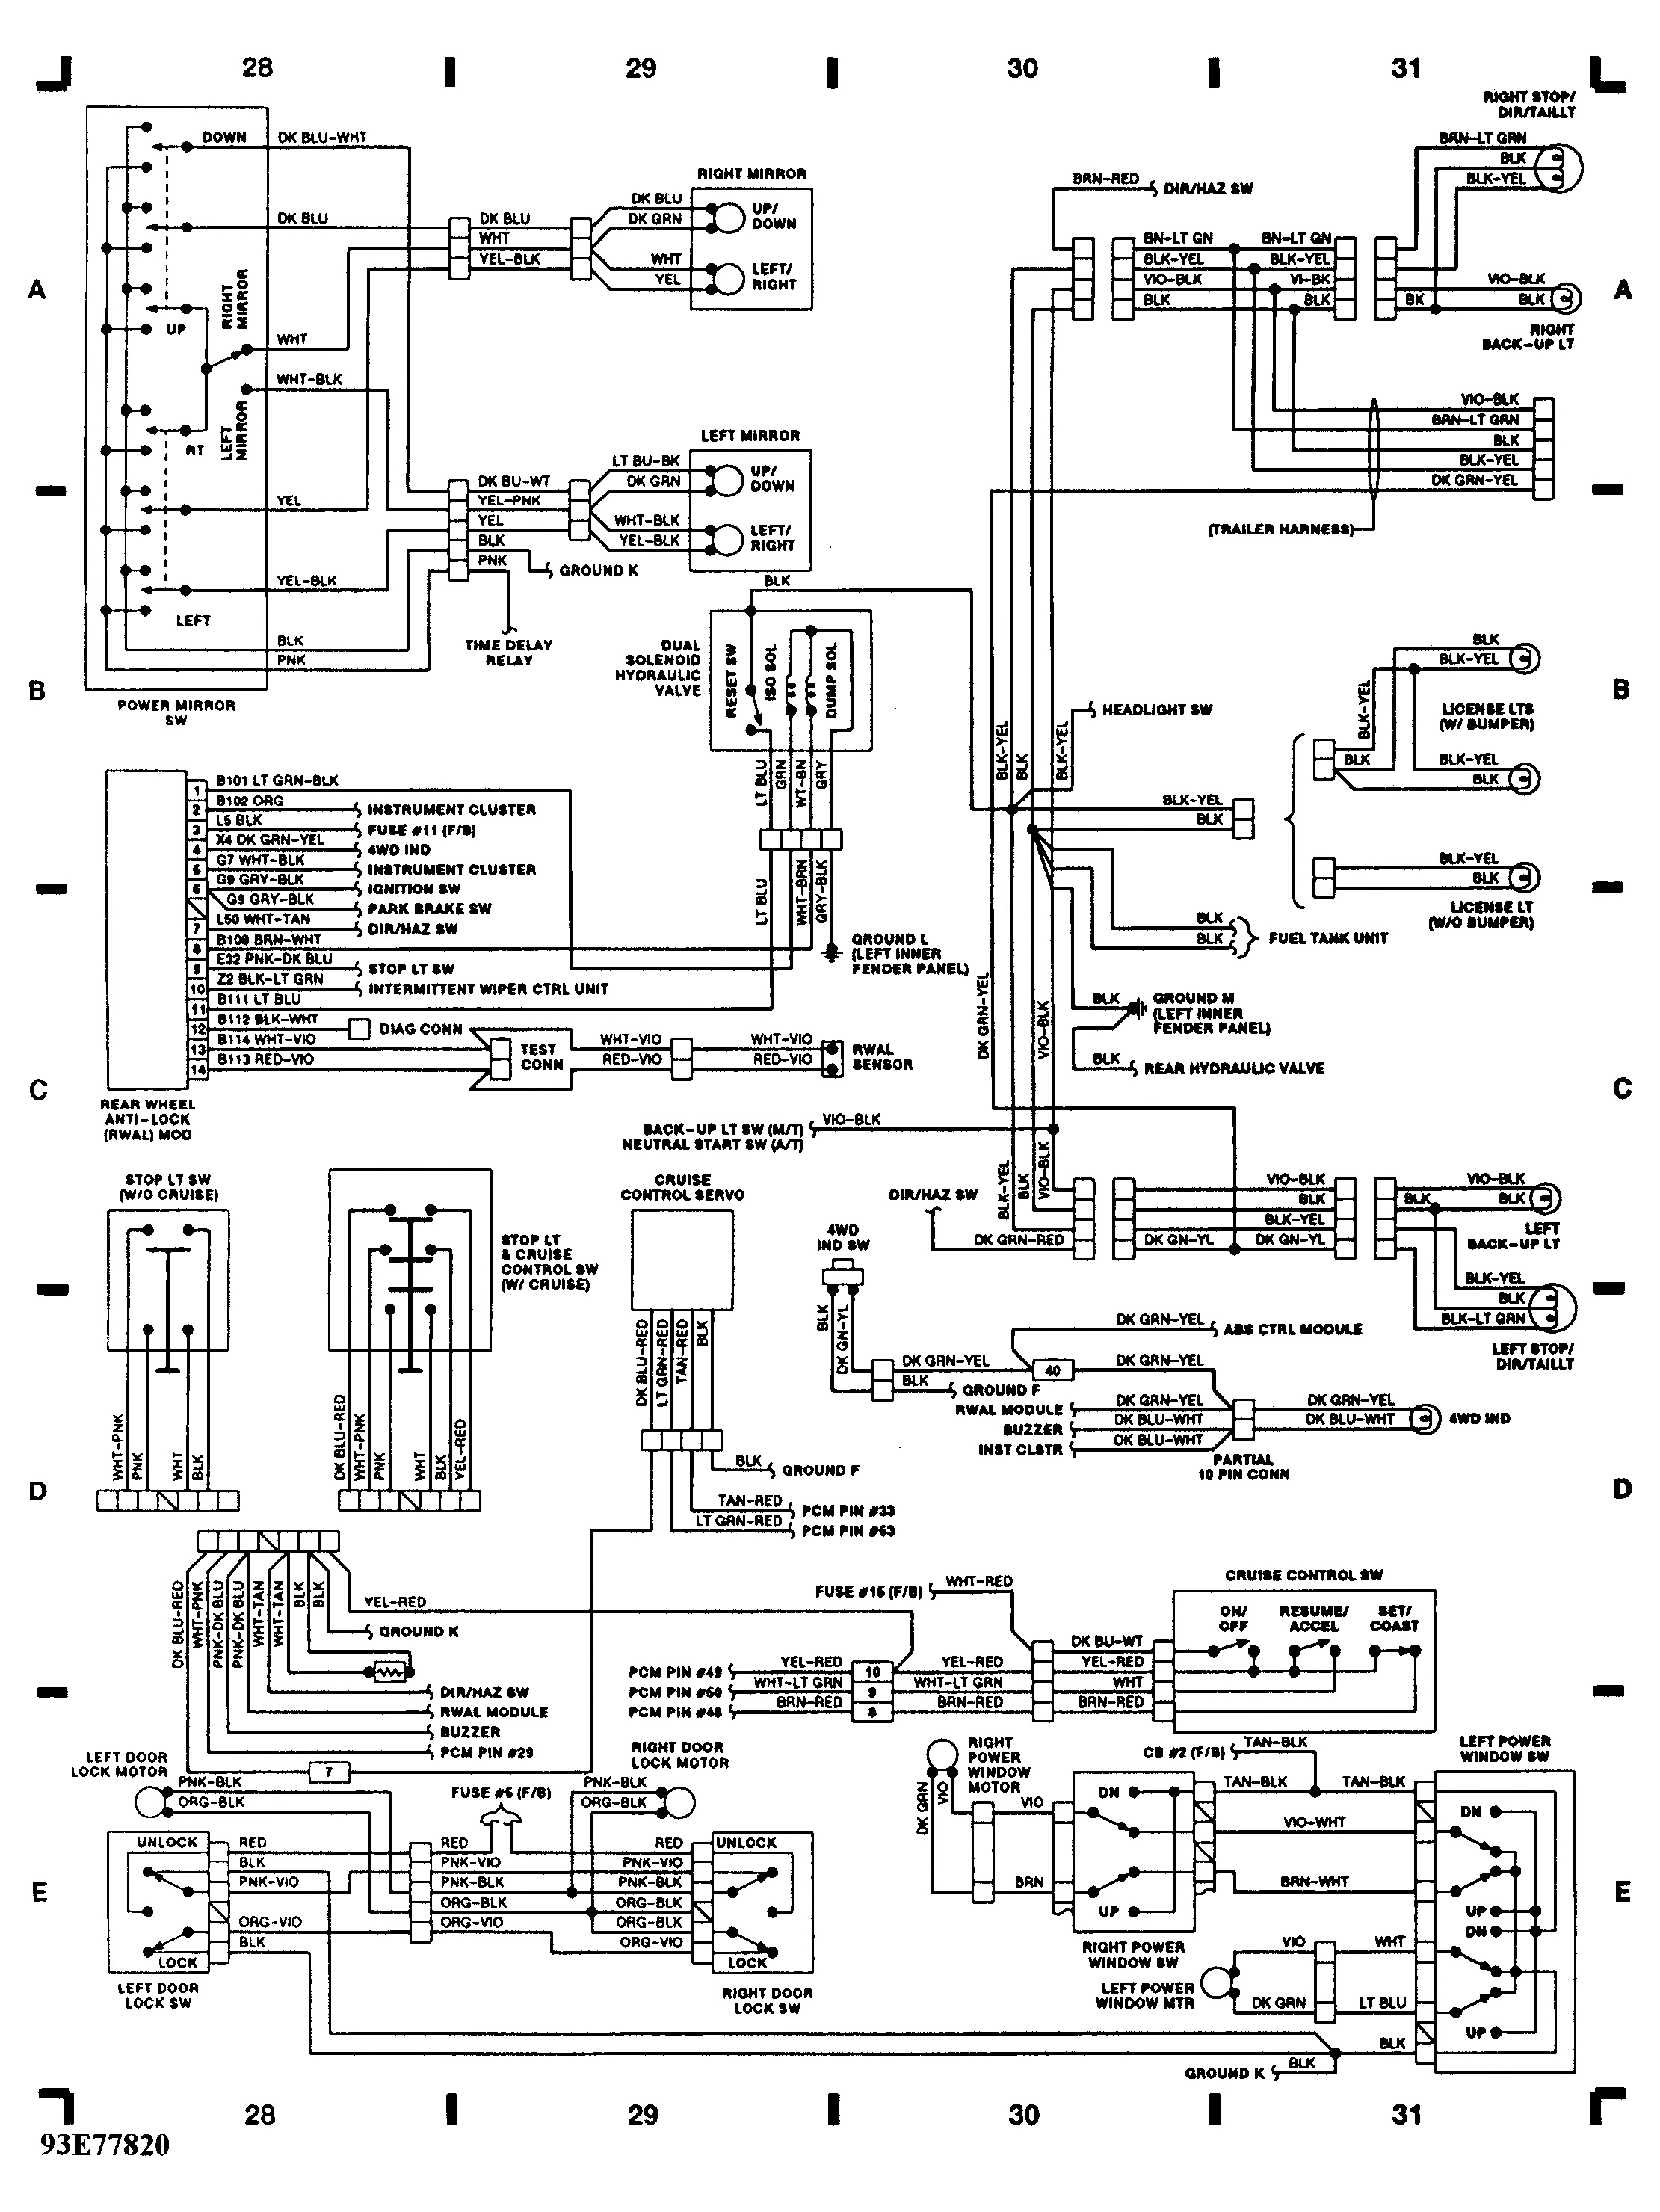 Durango Slt Break Light Wiring Diagram 38 Images 2000 Dodge Dakota Fog Original Tail And Parking Lights Not Working 1st Head Switch Went 2002